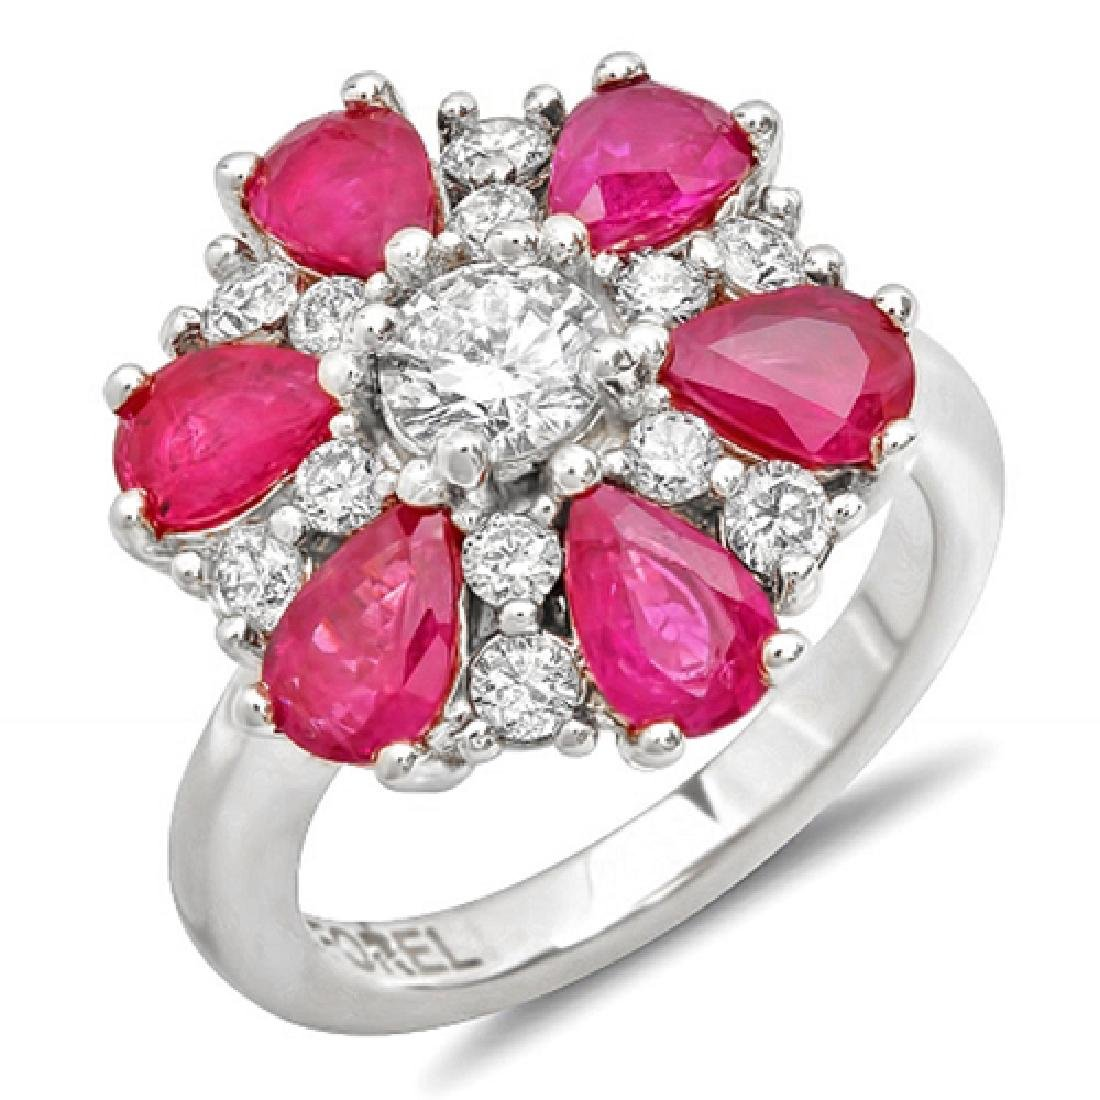 3.72 Carat Natural Ruby 18K Solid White Gold Diamond